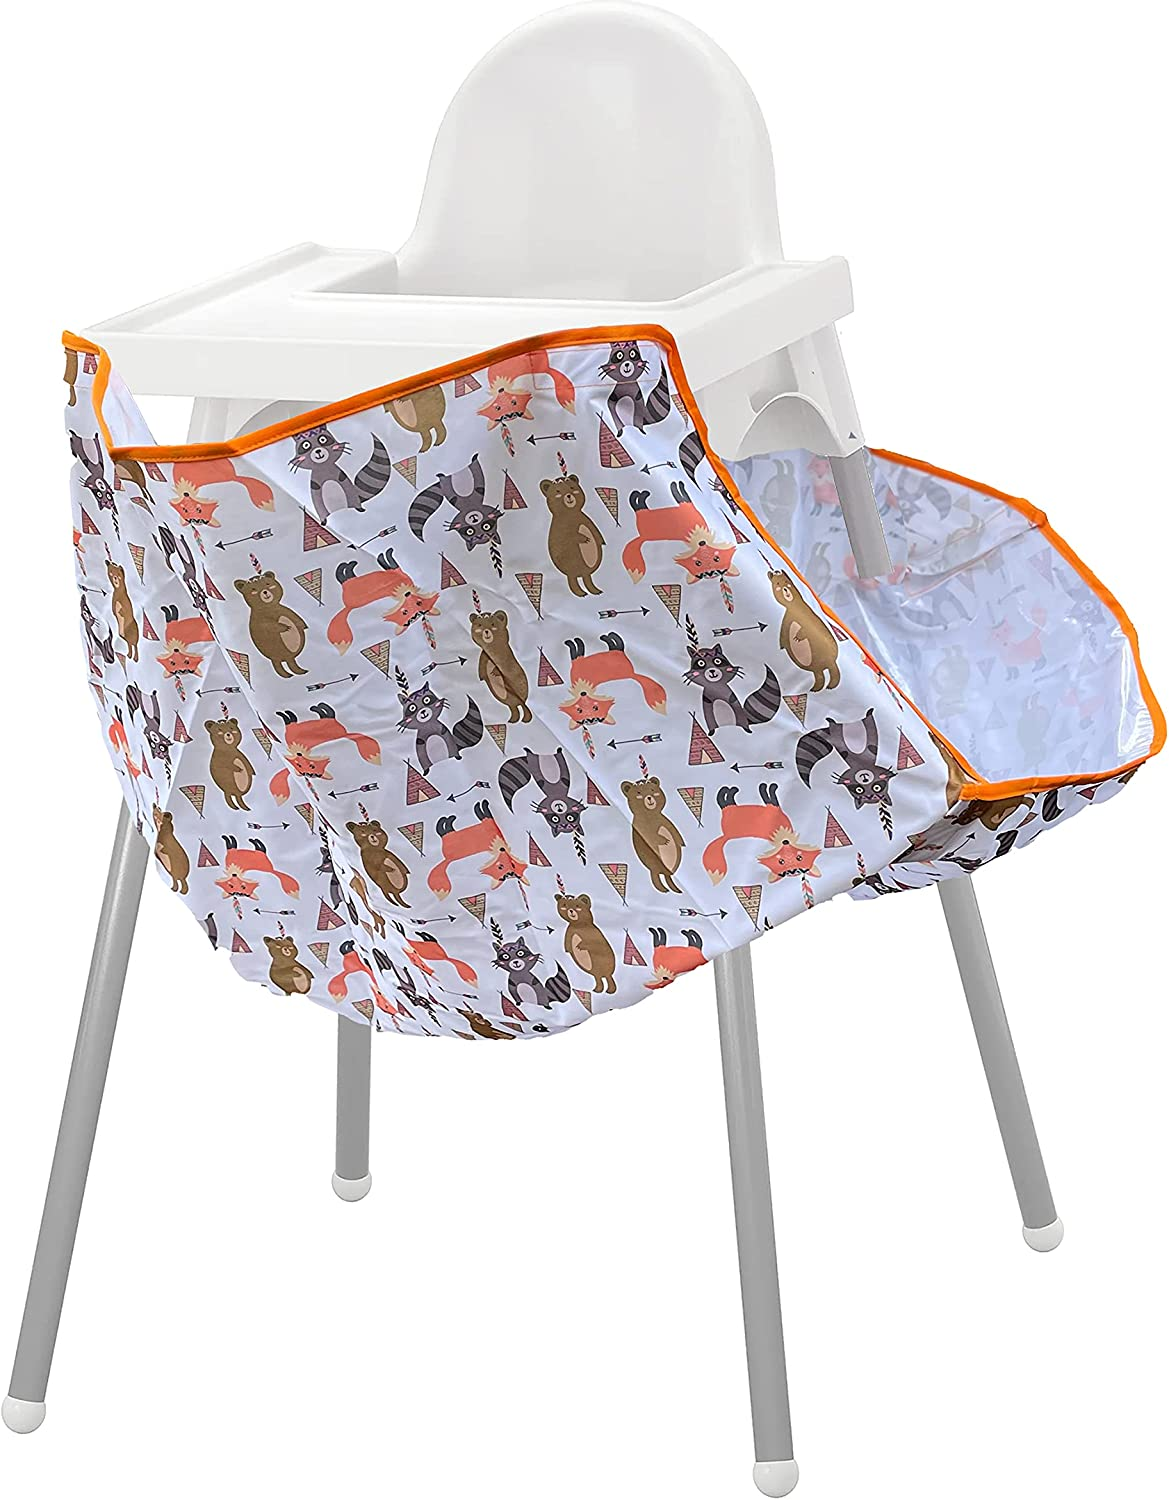 High Chair Food Catcher For Babies & Toddlers, Wipeable & Washable | Mumma's Little Helpers